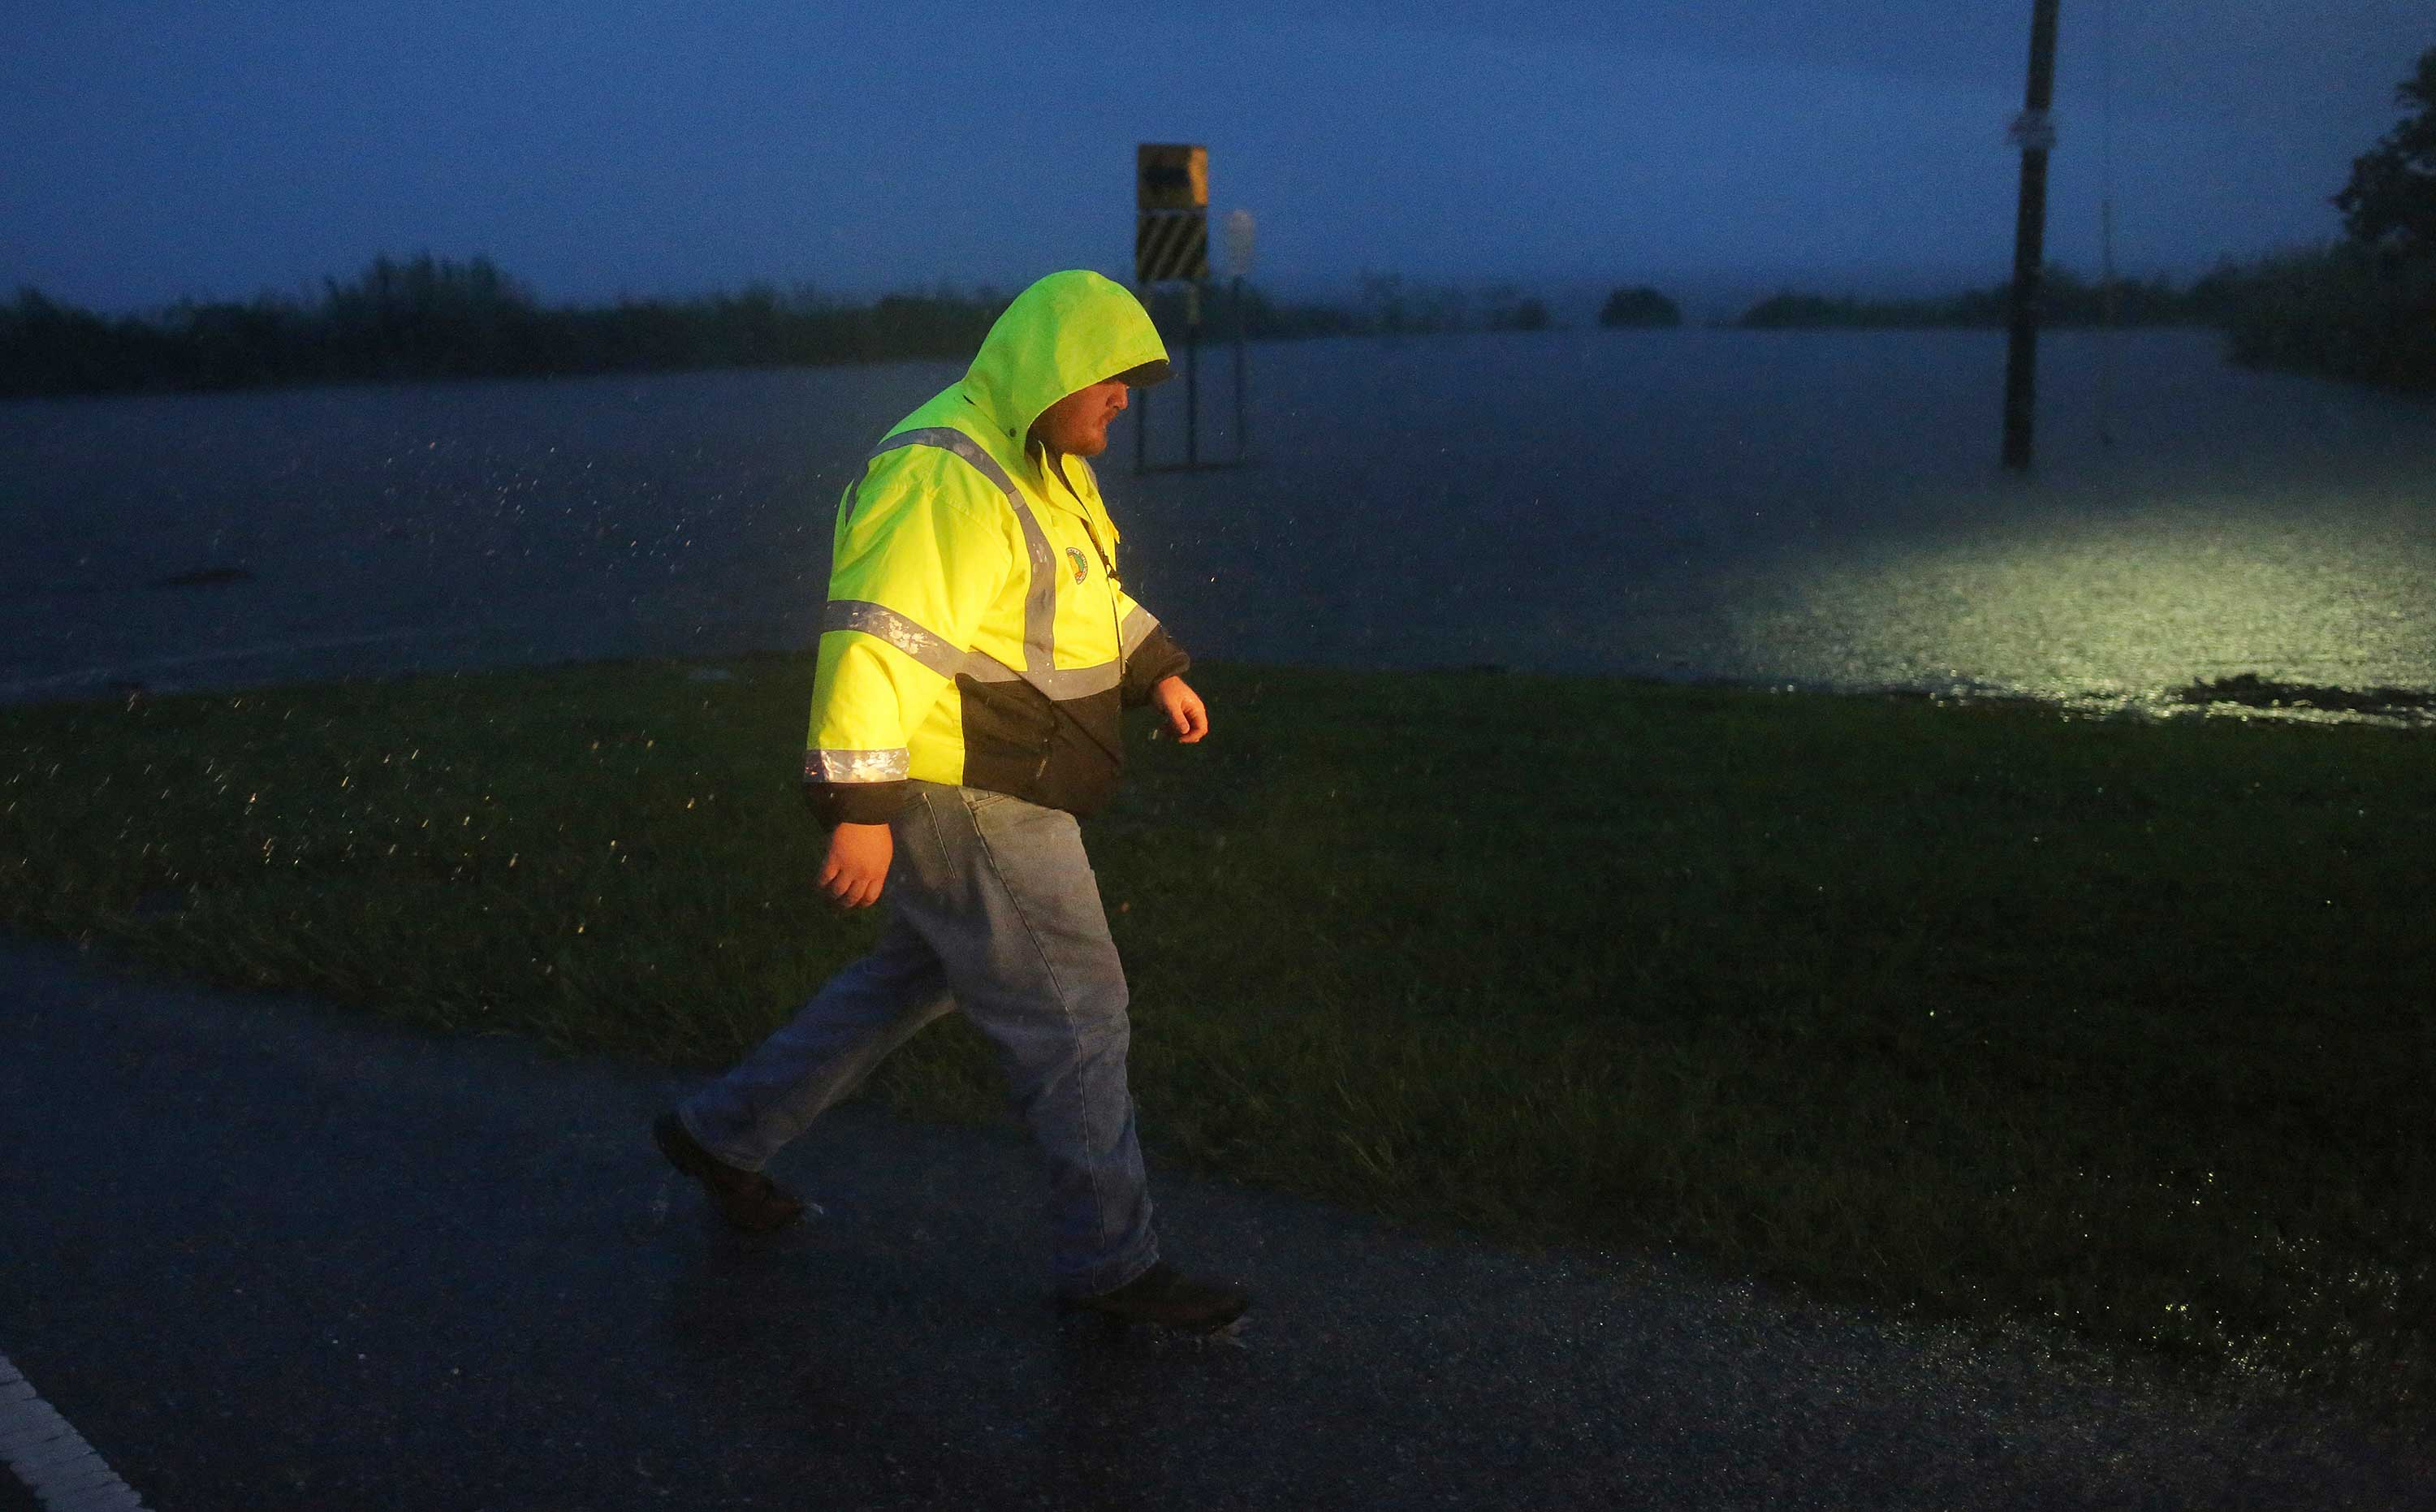 "<div class=""meta image-caption""><div class=""origin-logo origin-image none""><span>none</span></div><span class=""caption-text"">A crew member with the Alabama Department of Transportation walks by a flooded parking lot on US Highway 98 in Spanish Fort, Ala. on Wednesday, Sept. 5. (Dan Anderson/AP Photo)</span></div>"